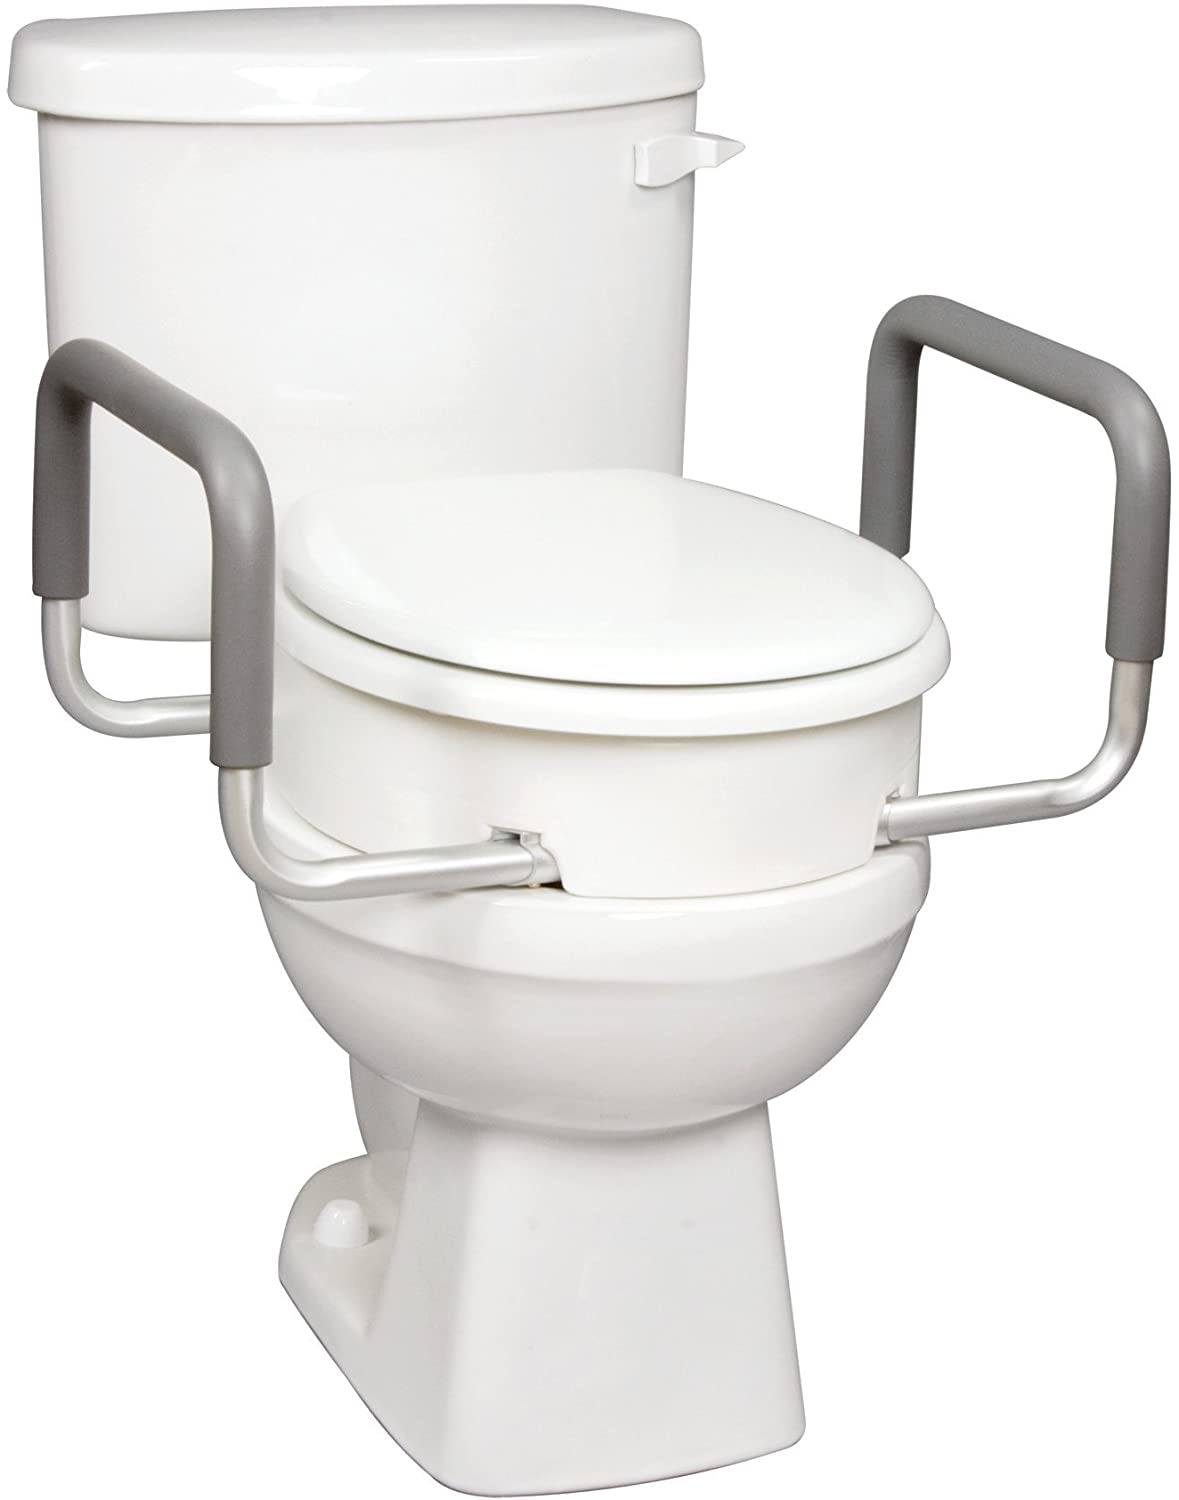 Toilet Seat Height Extender - For Round Toilets